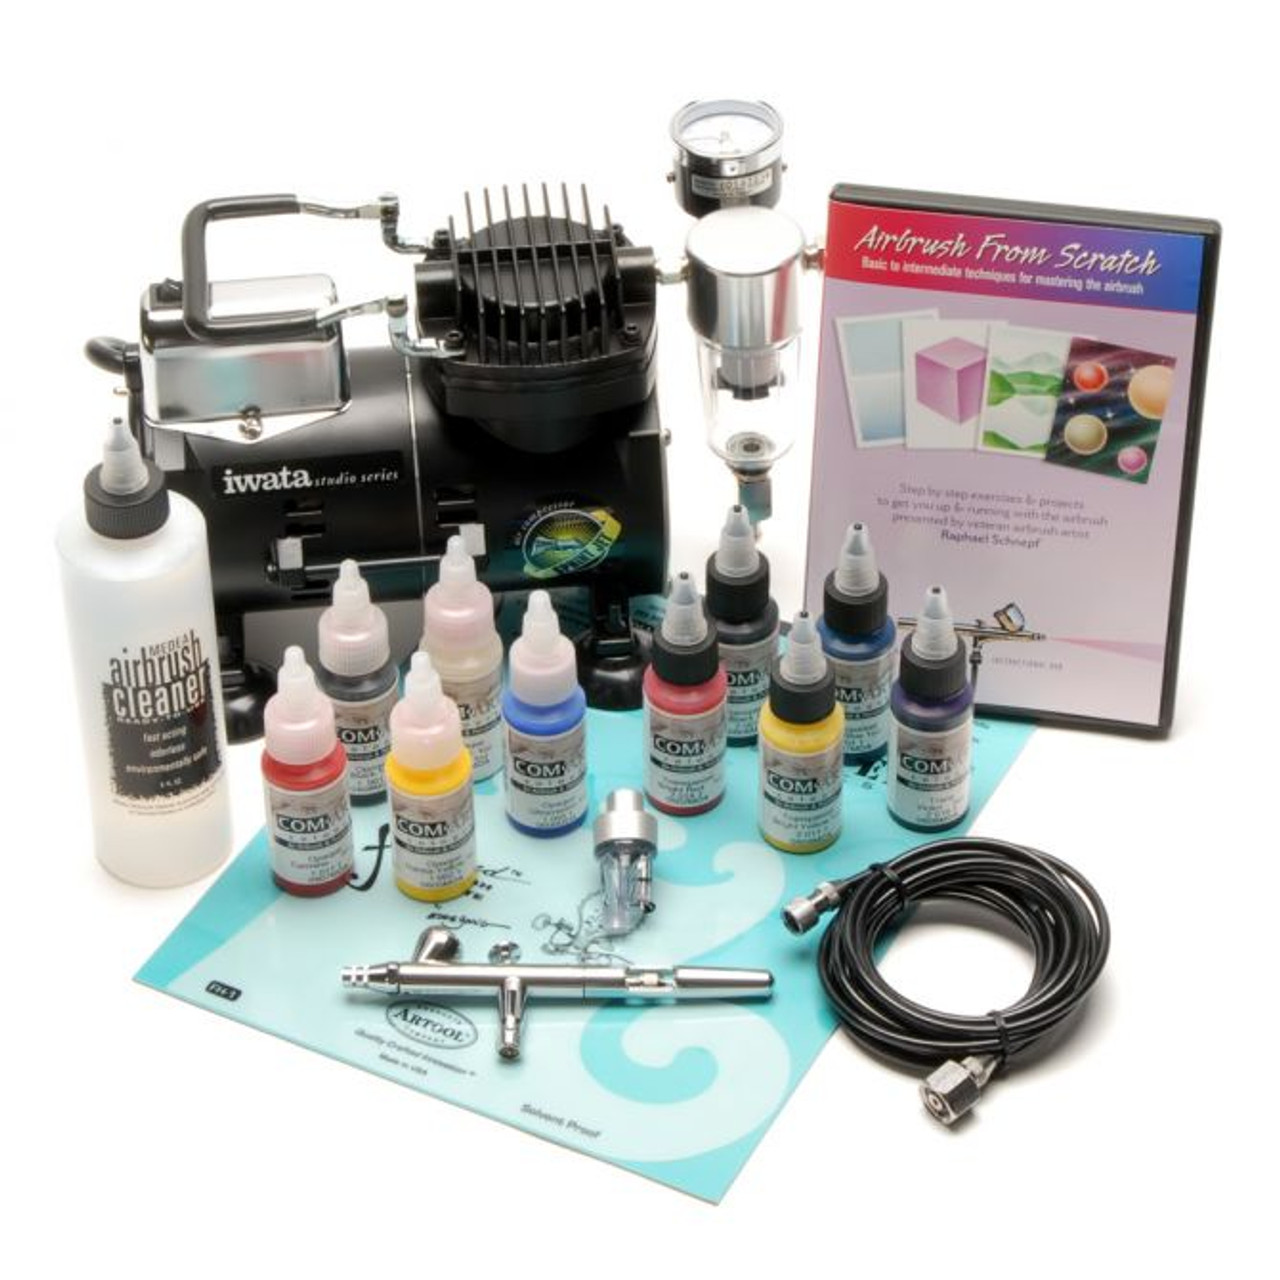 Iwata Intro Airbrush Set with Eclipse HP-BS